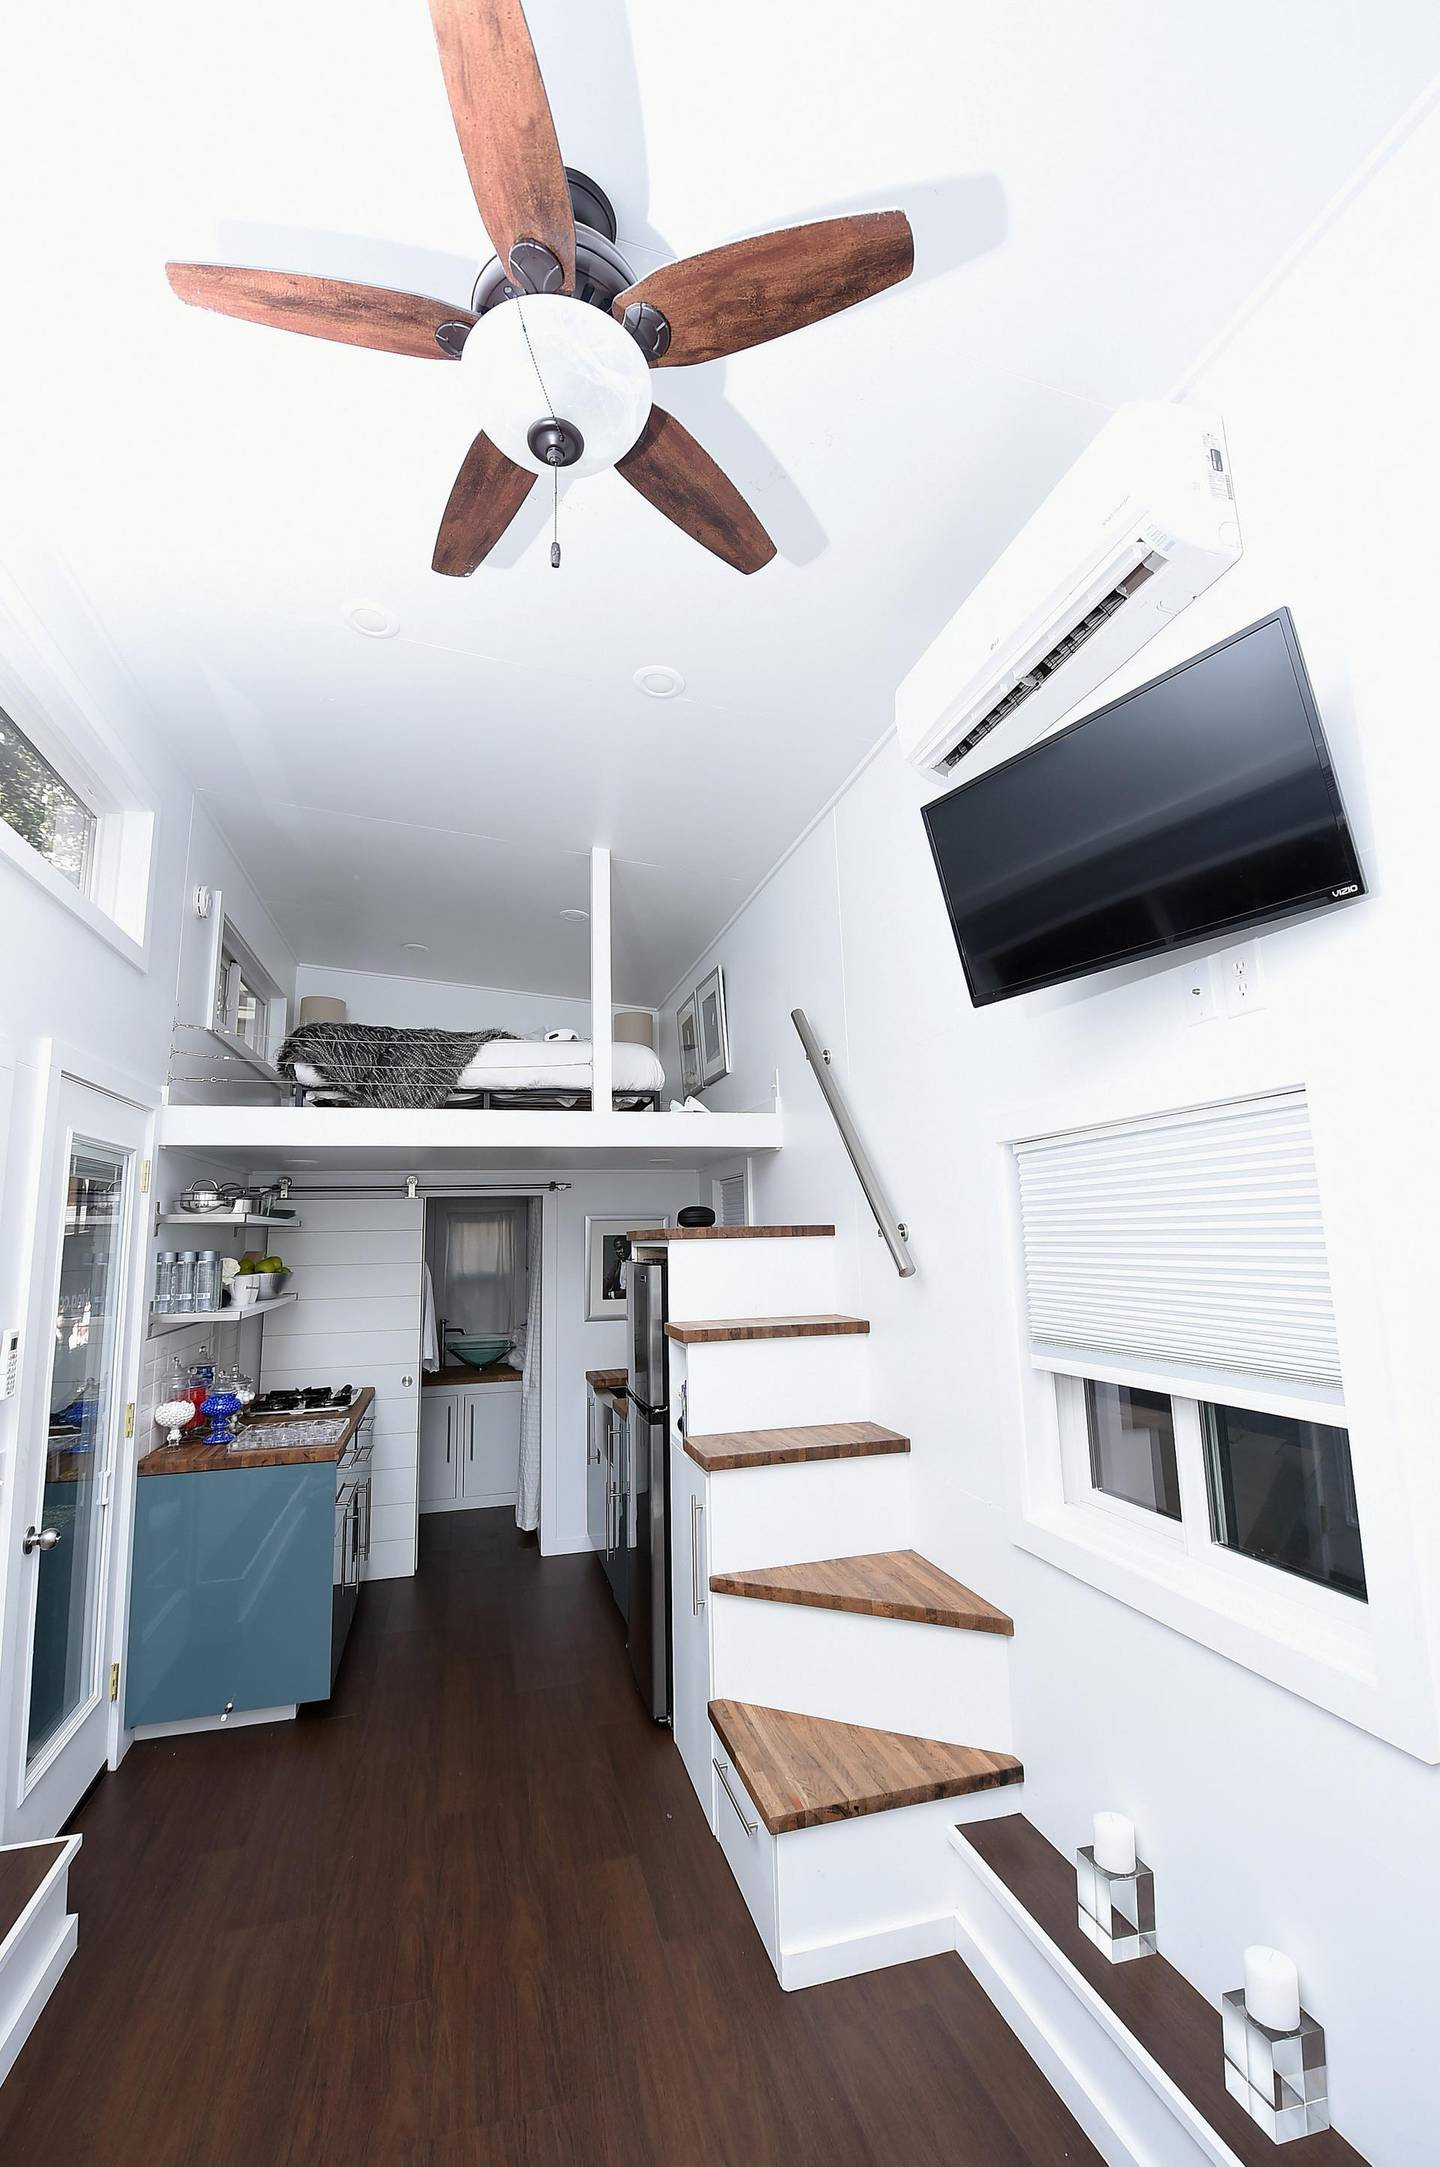 """NEW YORK, NY - SEPTEMBER 27: An interior view of the Tiny House during Booking.com's """"Tiny House With Big Personality"""" Curated By Kevin Hart on September 27, 2018 in New York City.   Michael Loccisano/Getty Images for Booking.com/AFP"""